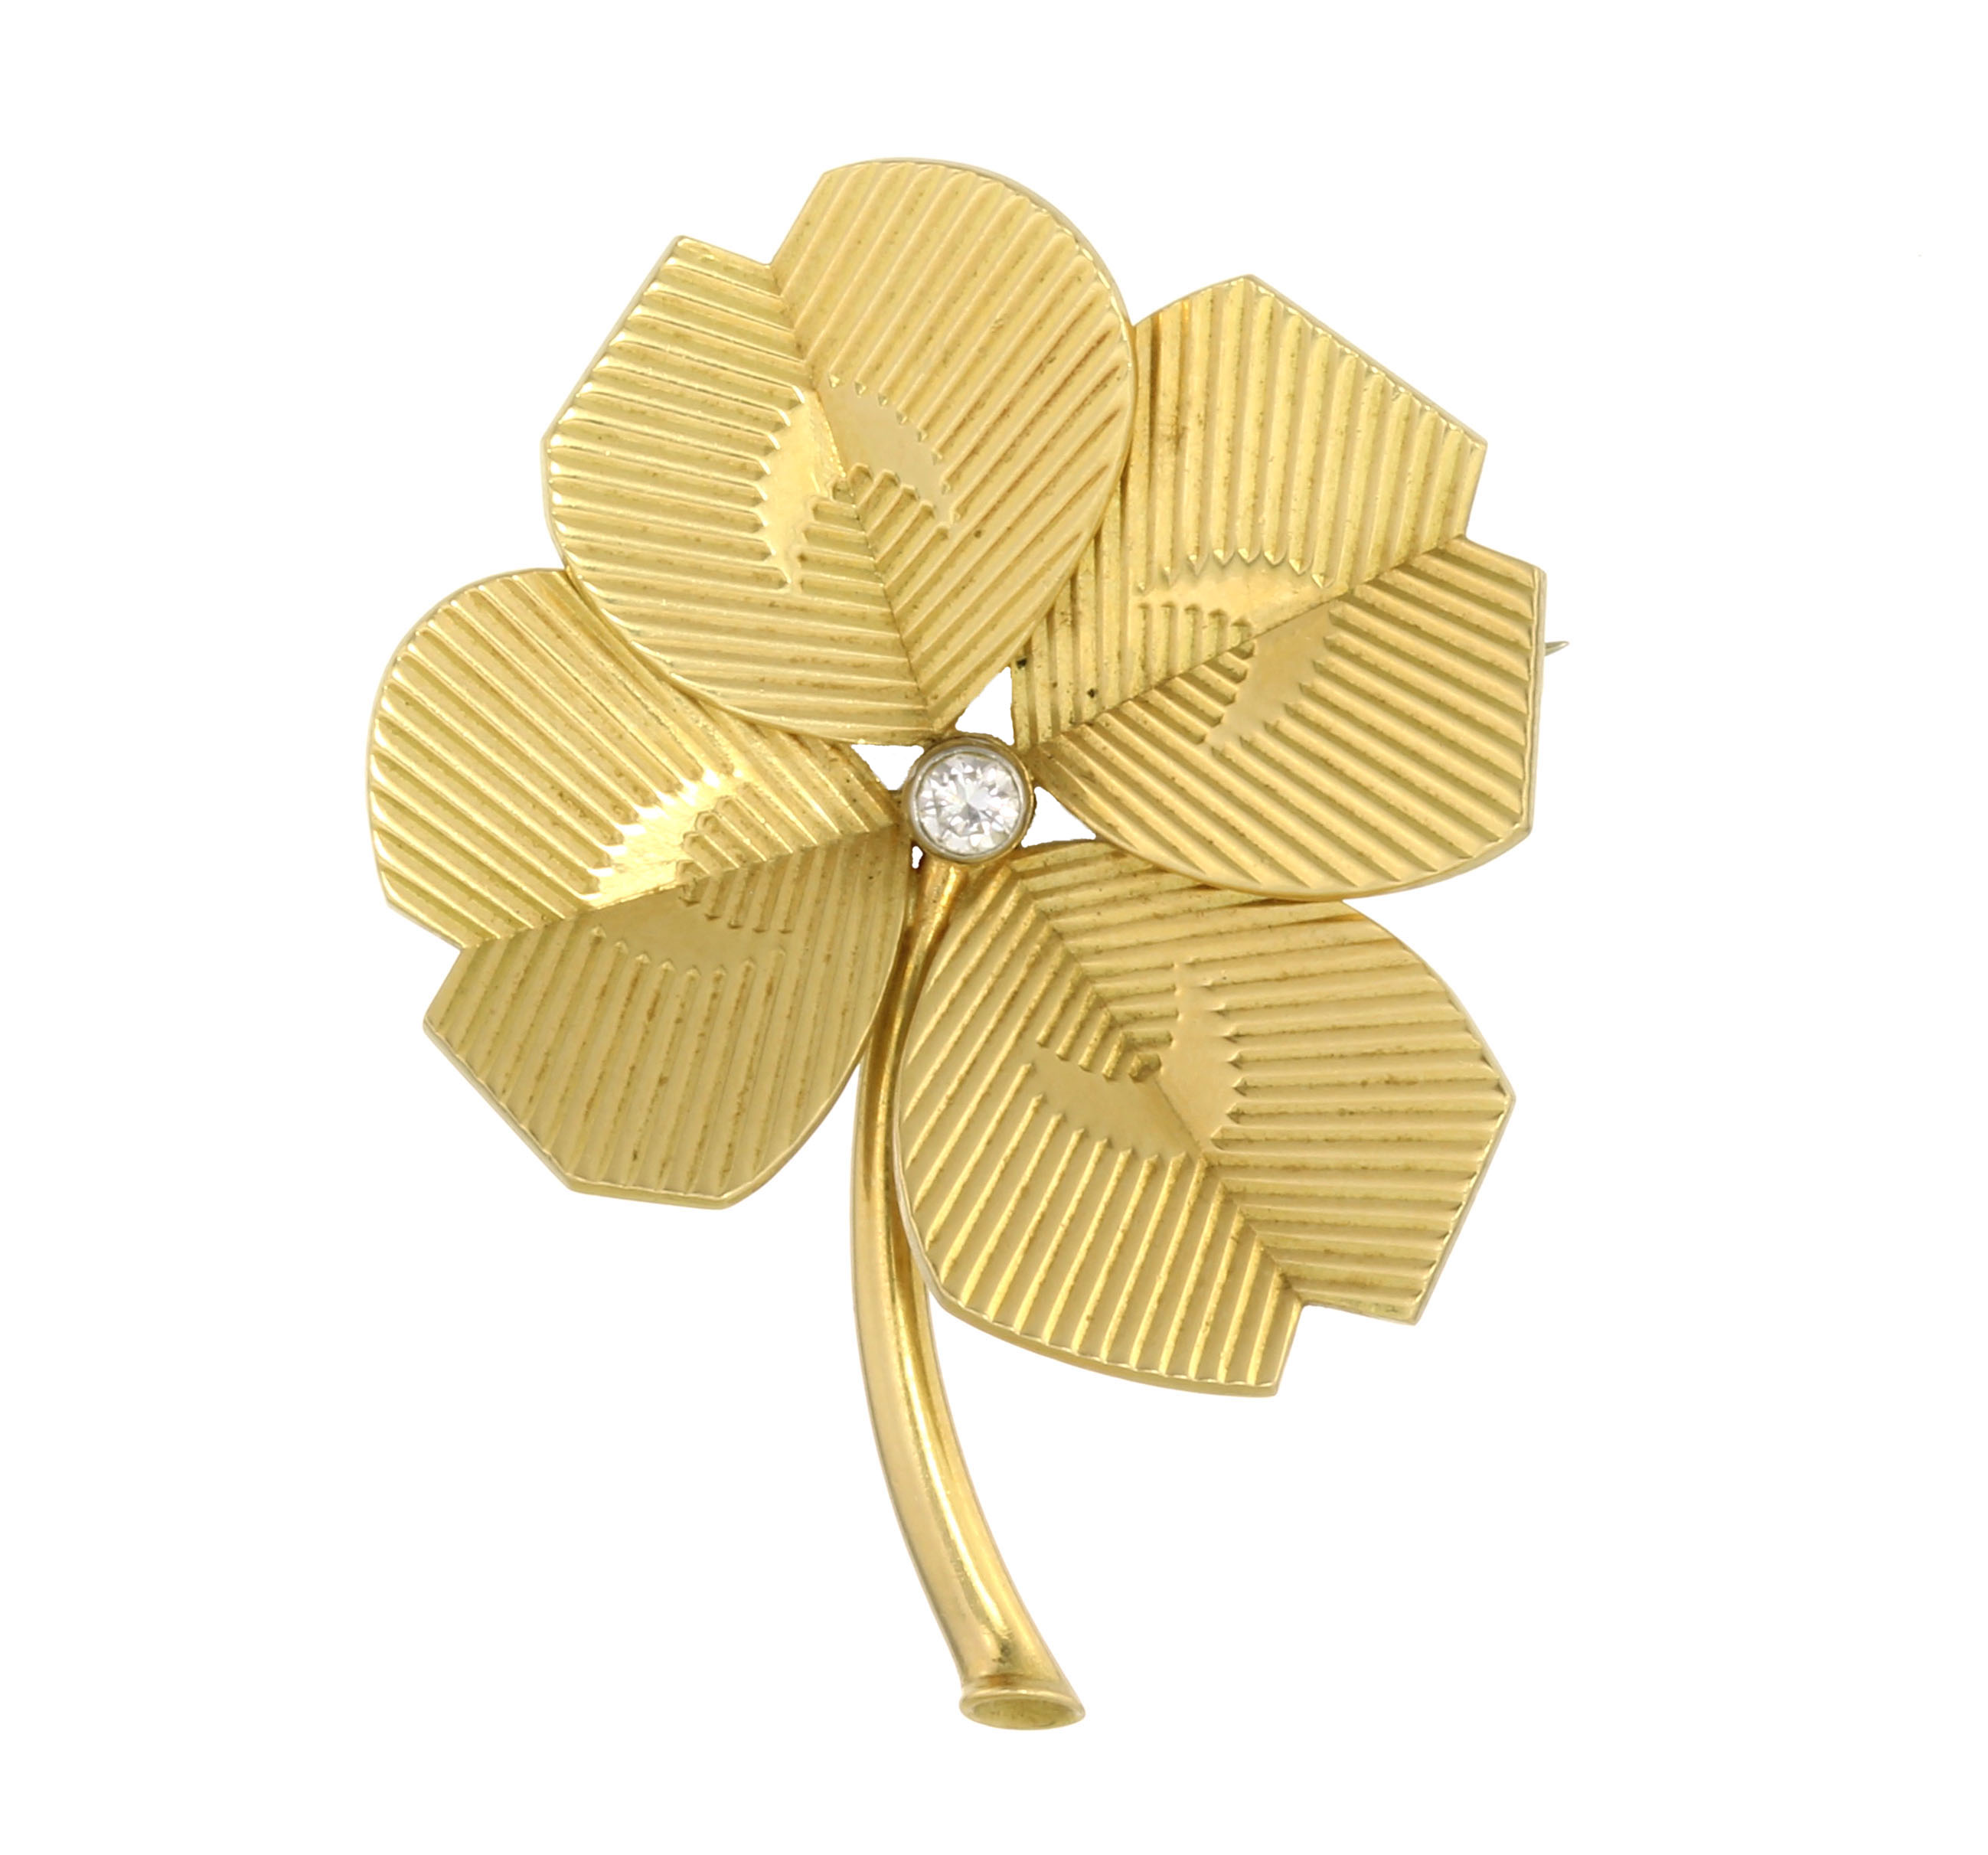 Los 57 - A VINTAGE DIAMOND FLOWER BROOCH, CARTIER 1960 in 18ct yellow gold designed as a flower, its